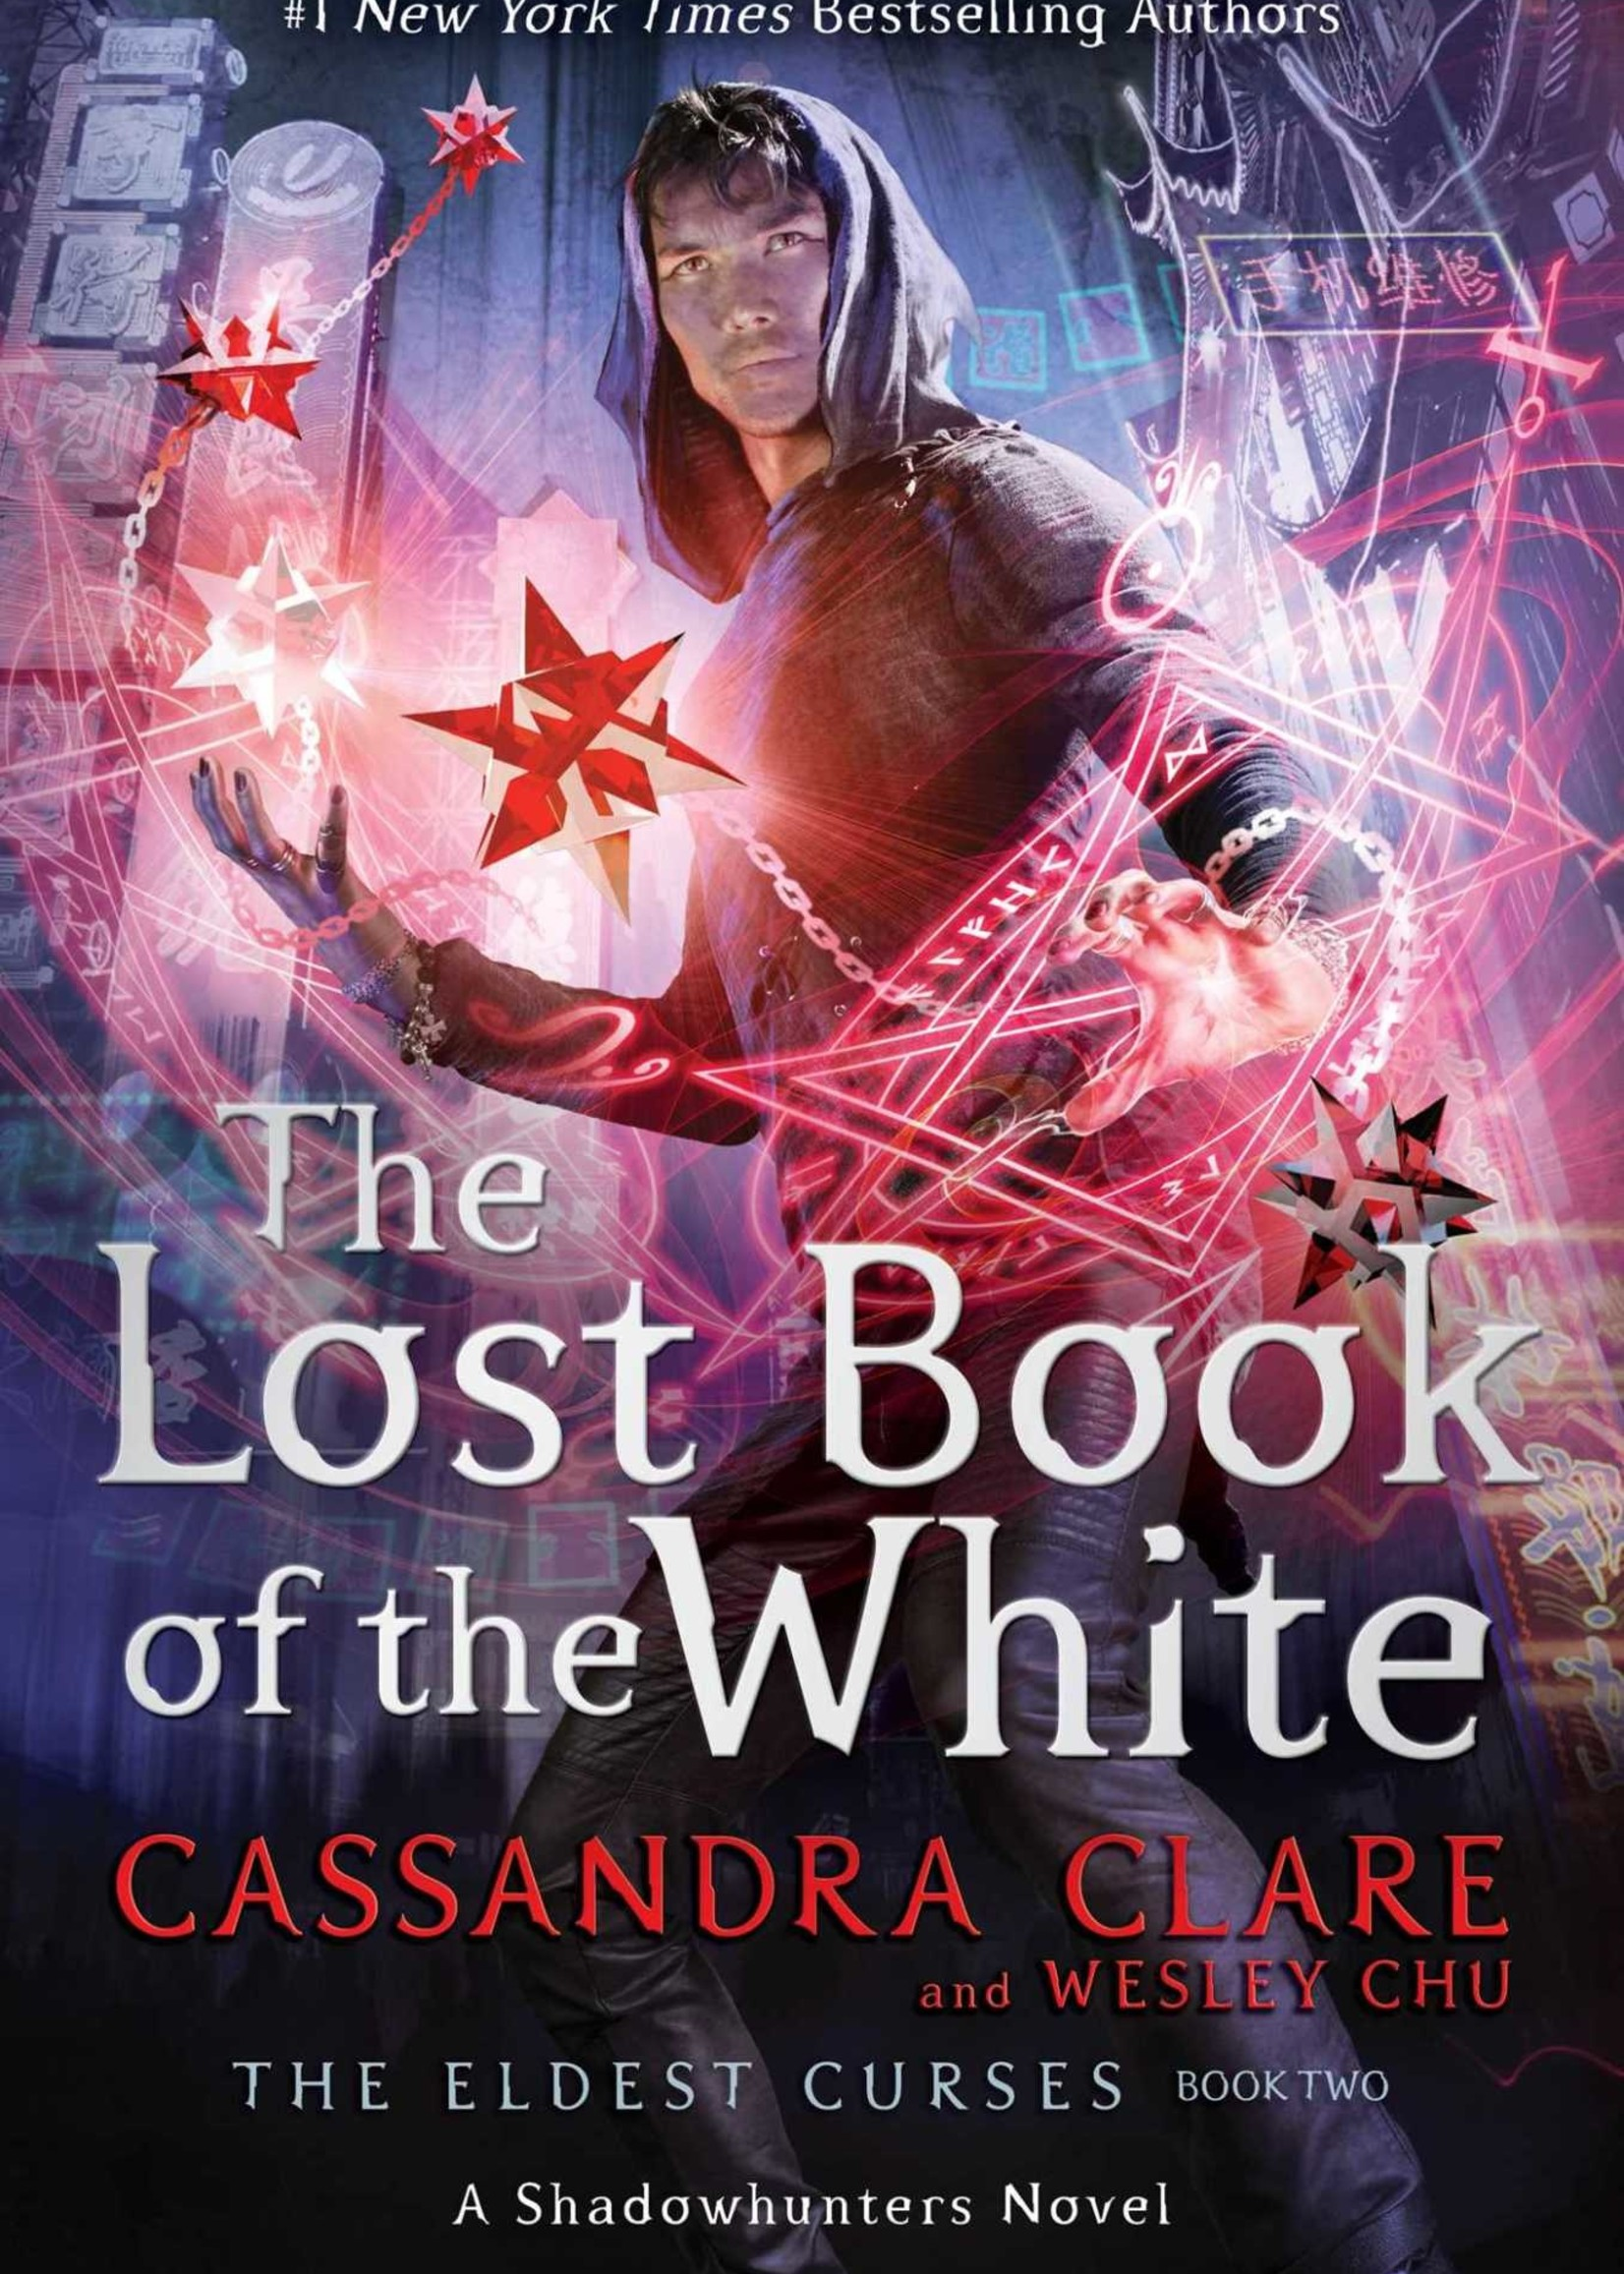 The Lost Book of the White (The Eldest Curses #2) by Cassandra Clare,  Wesley Chu